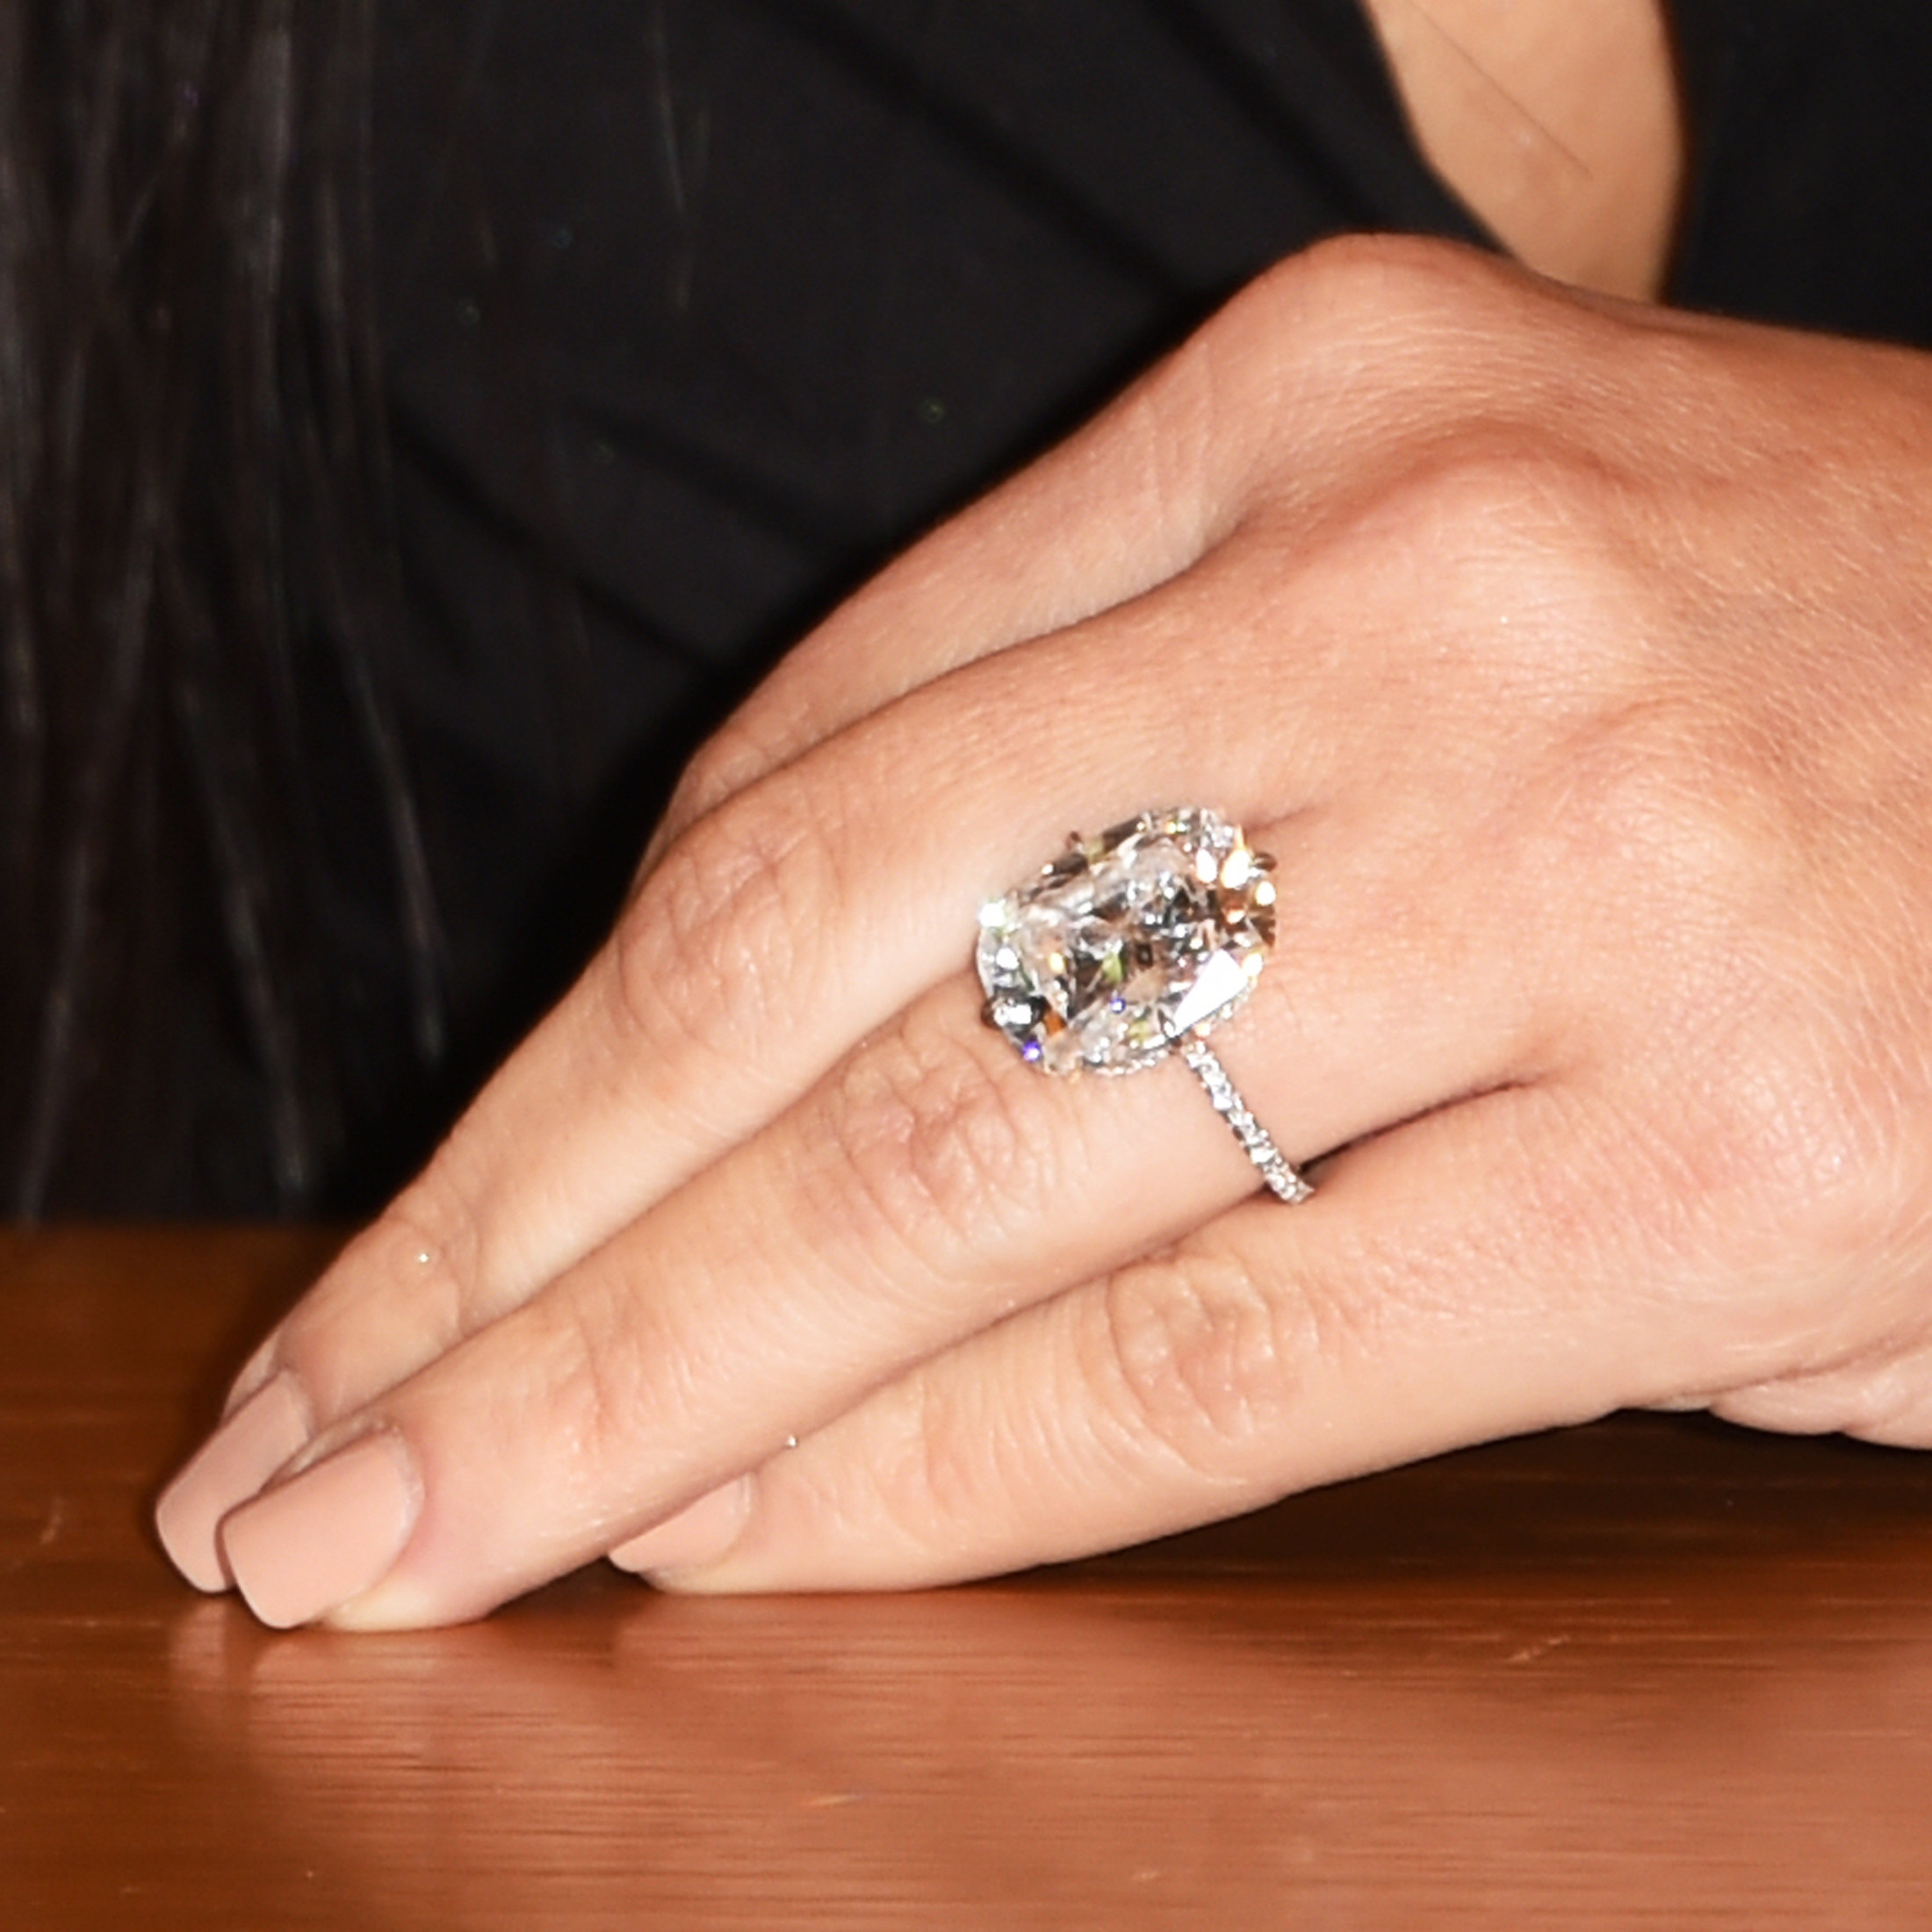 Kim Kardashian Flaunts New Diamond Ring | InStyle.com